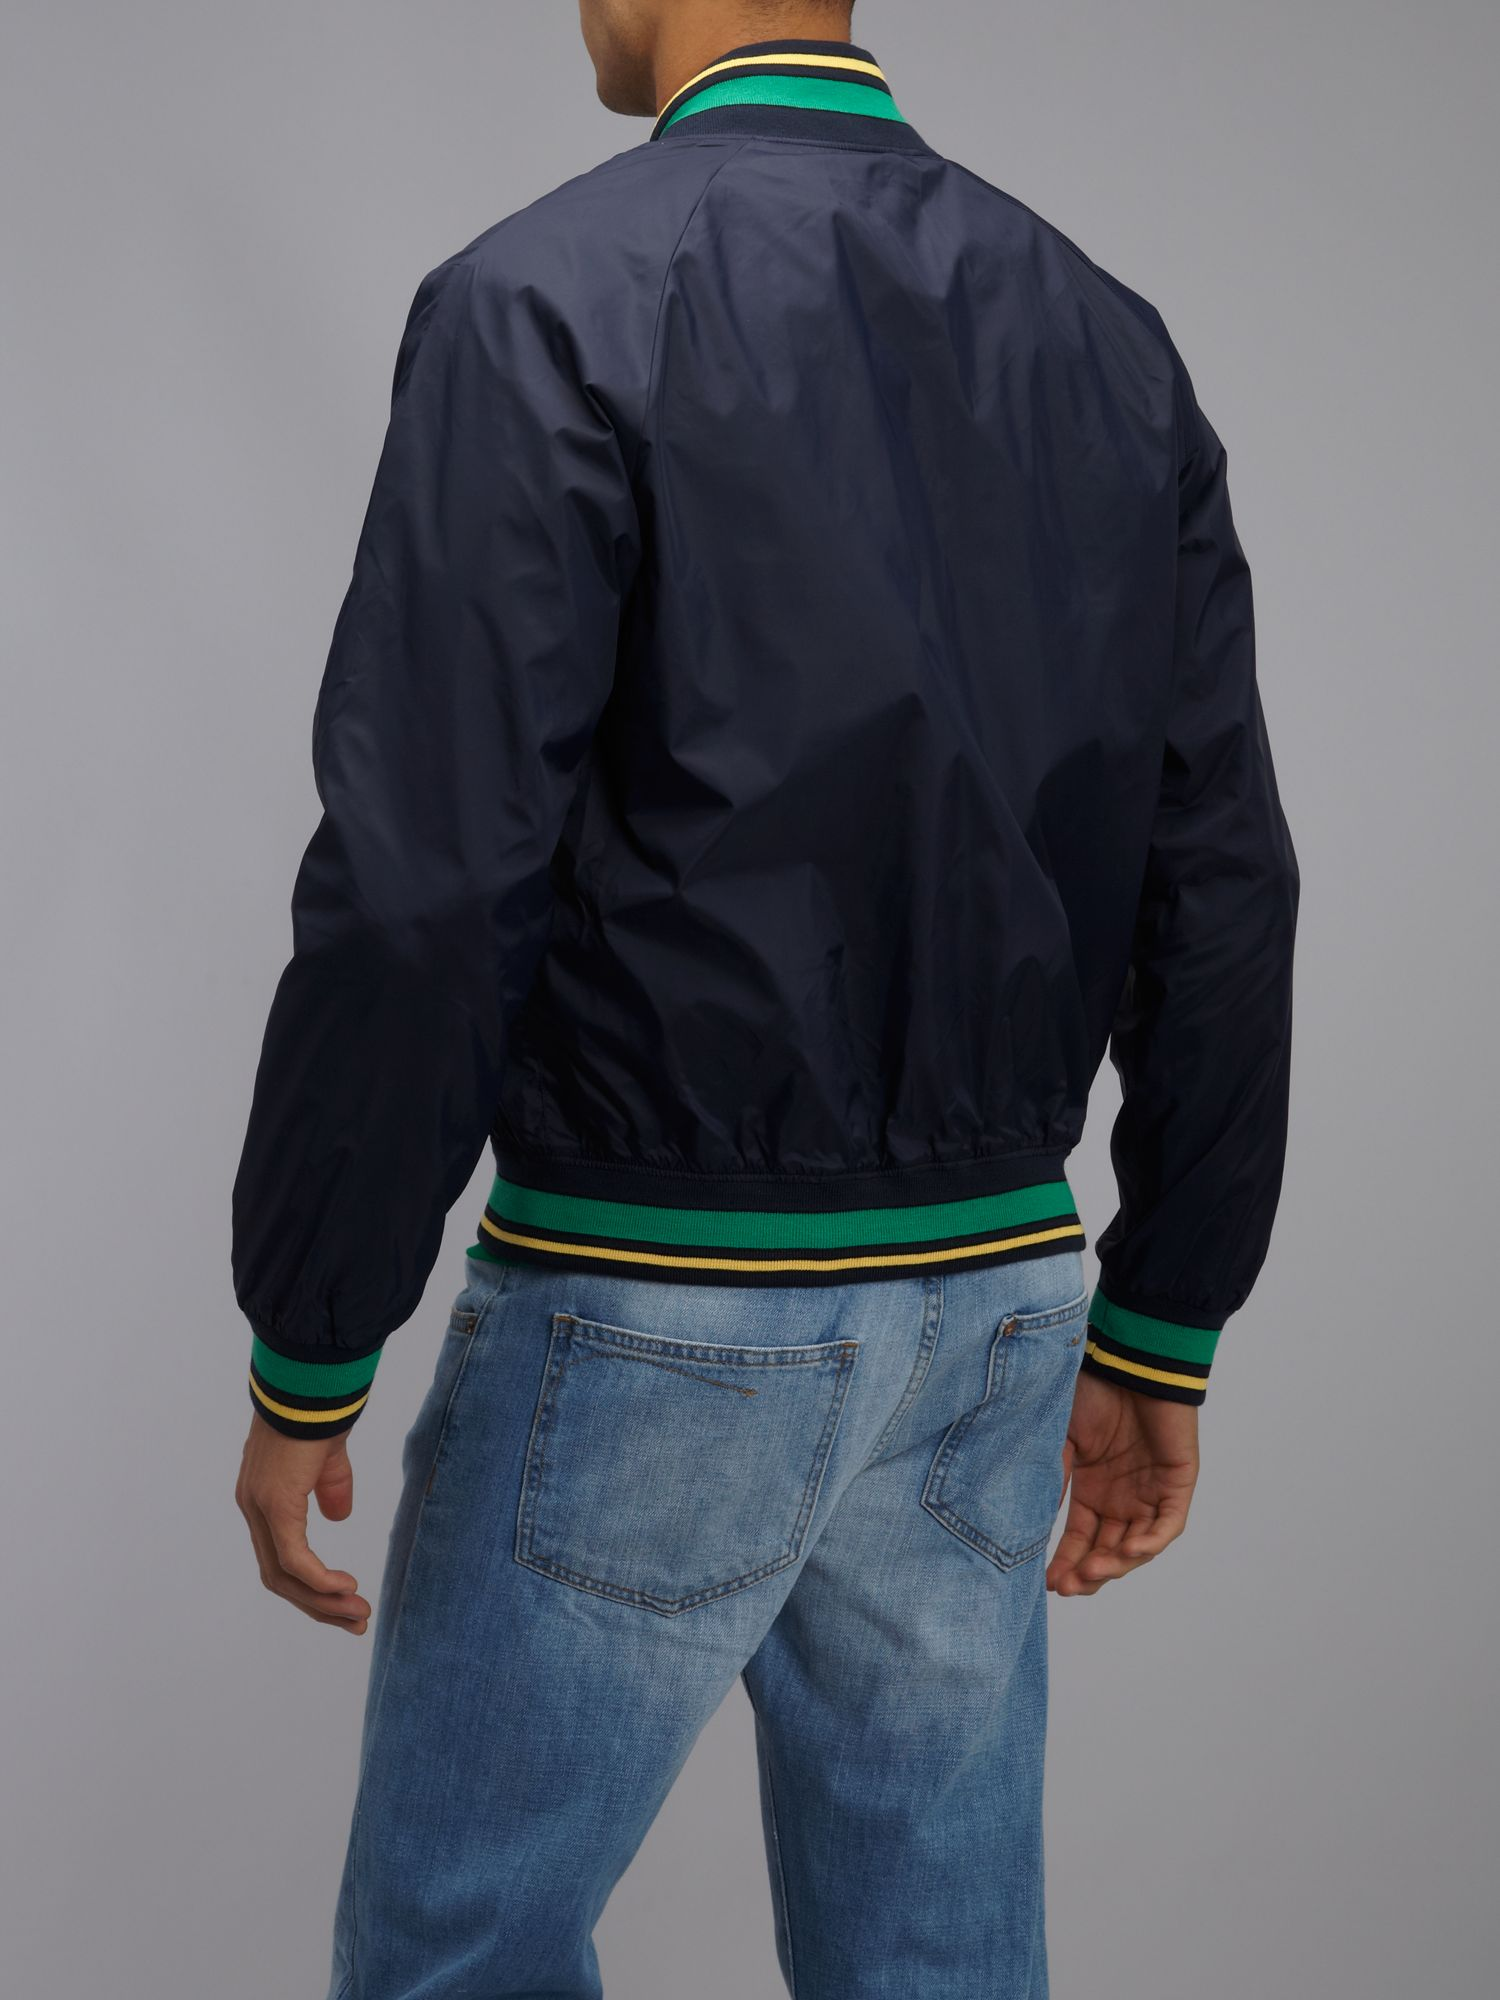 Lyst Lacoste Live Big Croc Bomber Jacket In Blue For Men